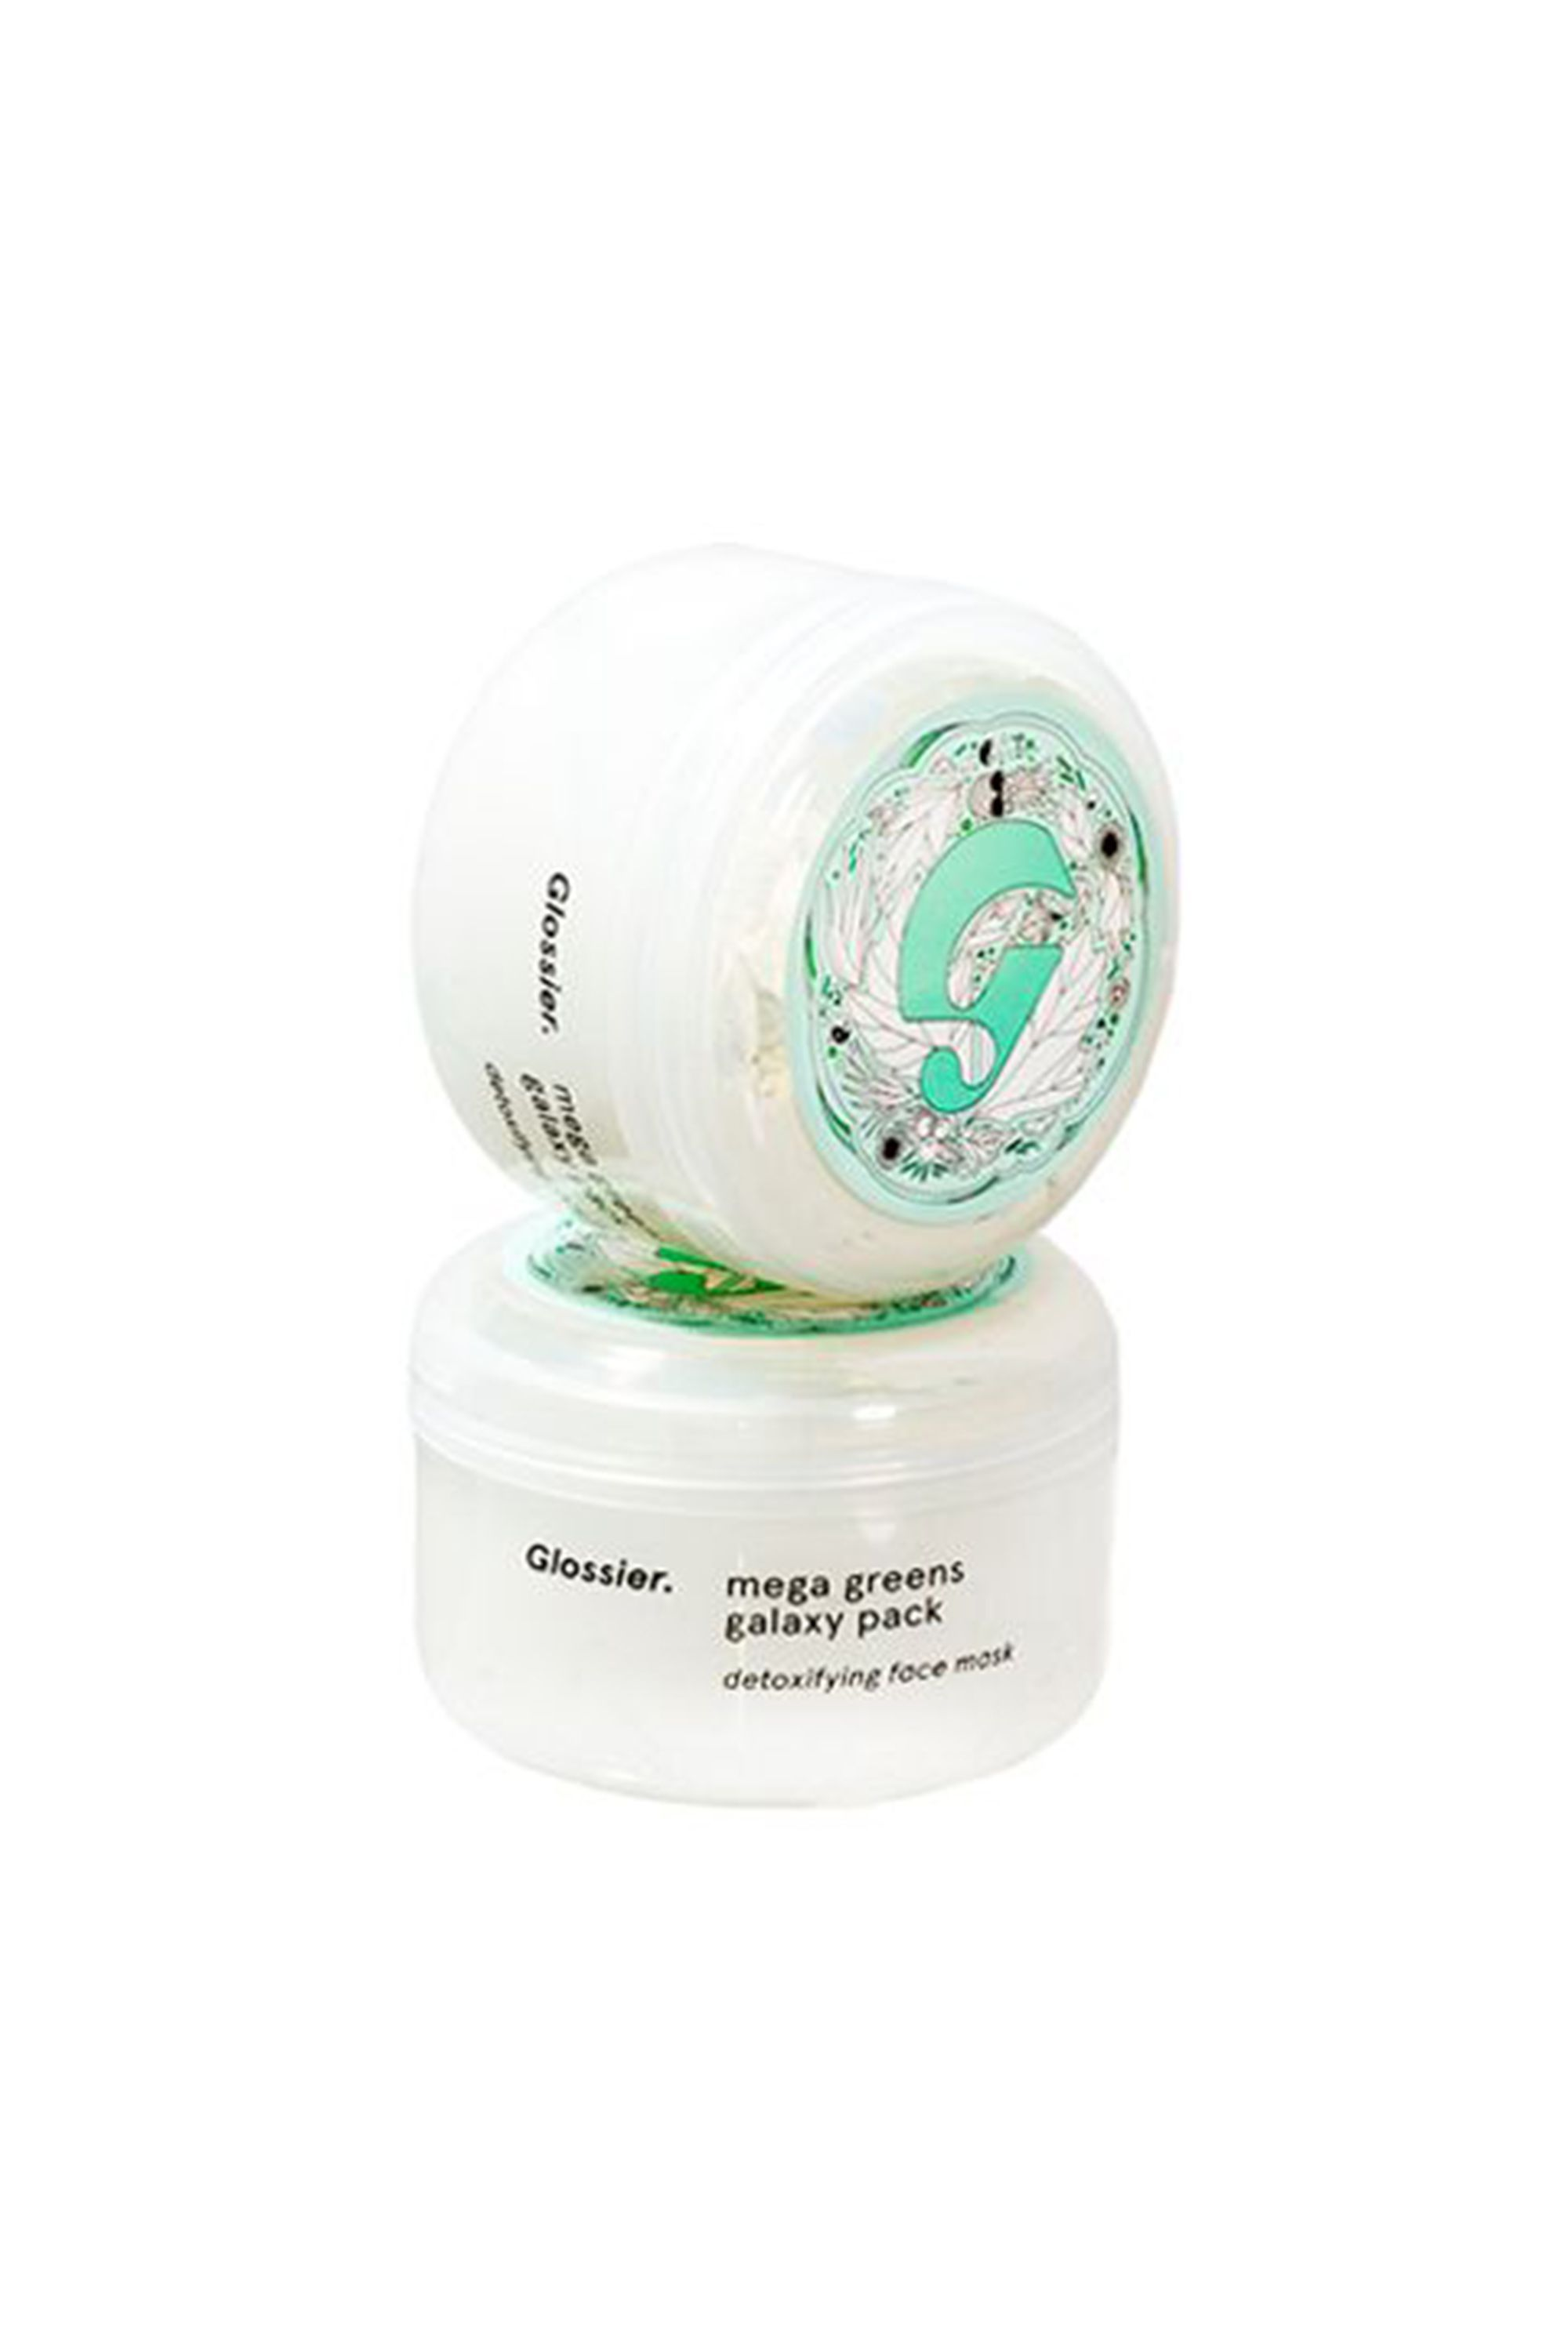 Mega Greens Galaxy Pack Glossier glossier.com $22.00 SHOP NOW Glossier's Mega Greens Galaxy face mask has both a creamy white clay to eliminate toxins and vitamin-rich leafy greens to clear up blemishes and prevent further breakouts from happening. It pairs best with Glossier's Moisturizing Moon mask.